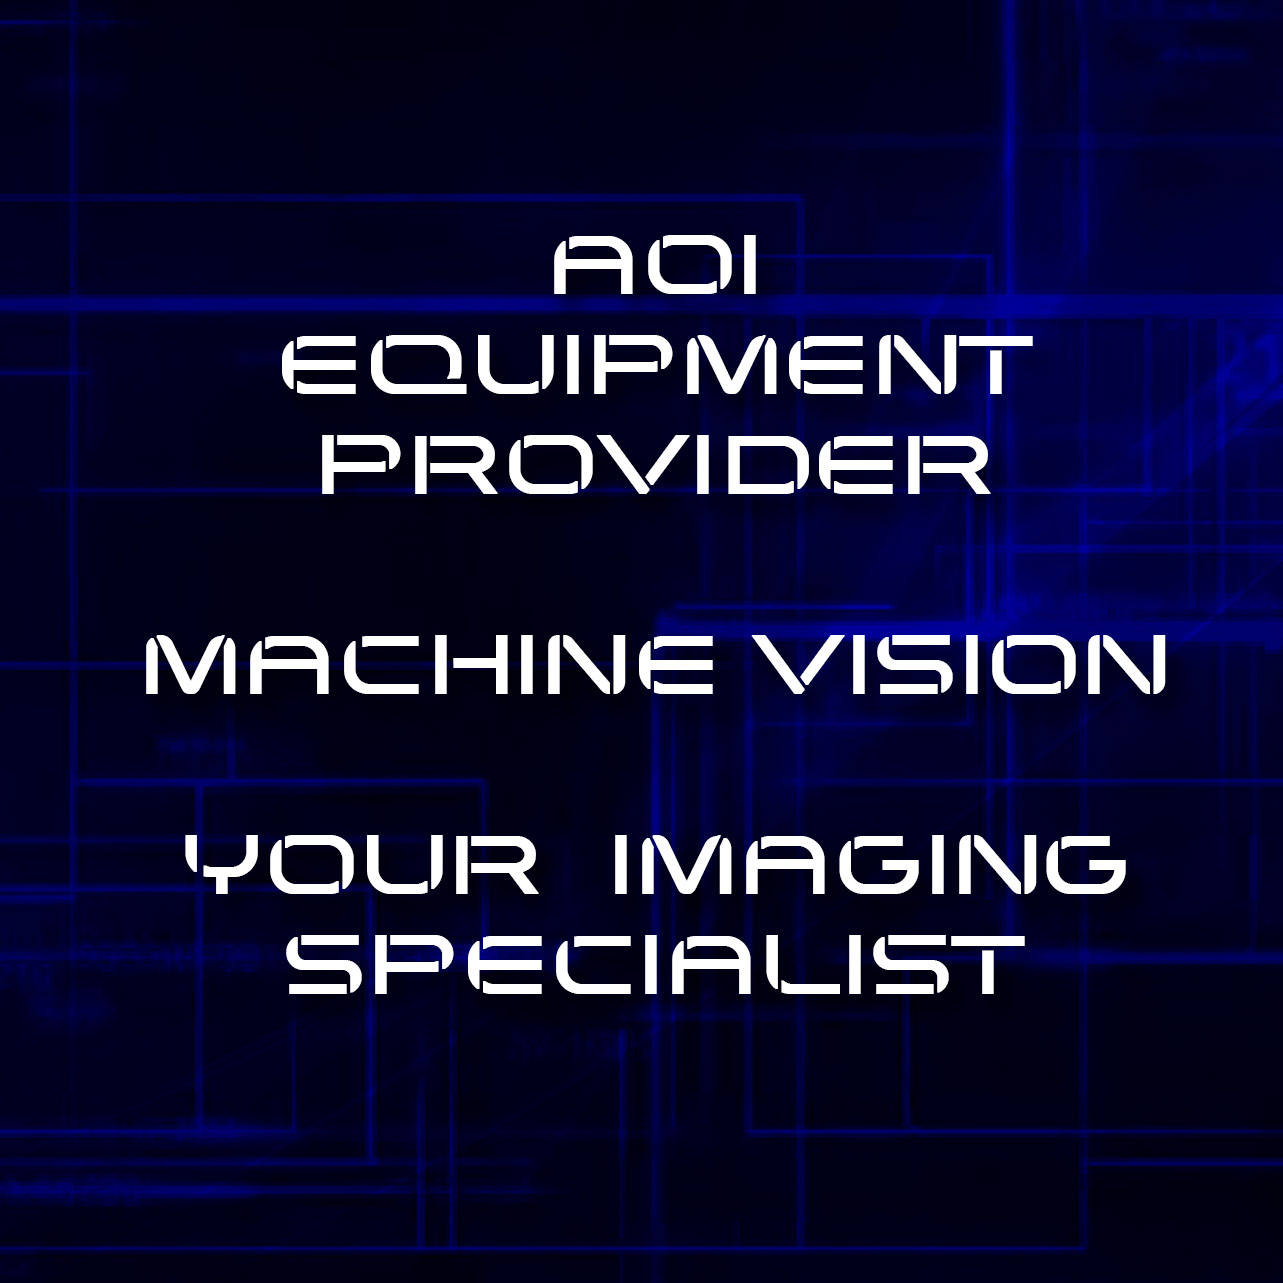 AOI Equipment Provider machine vision your imaging specialist